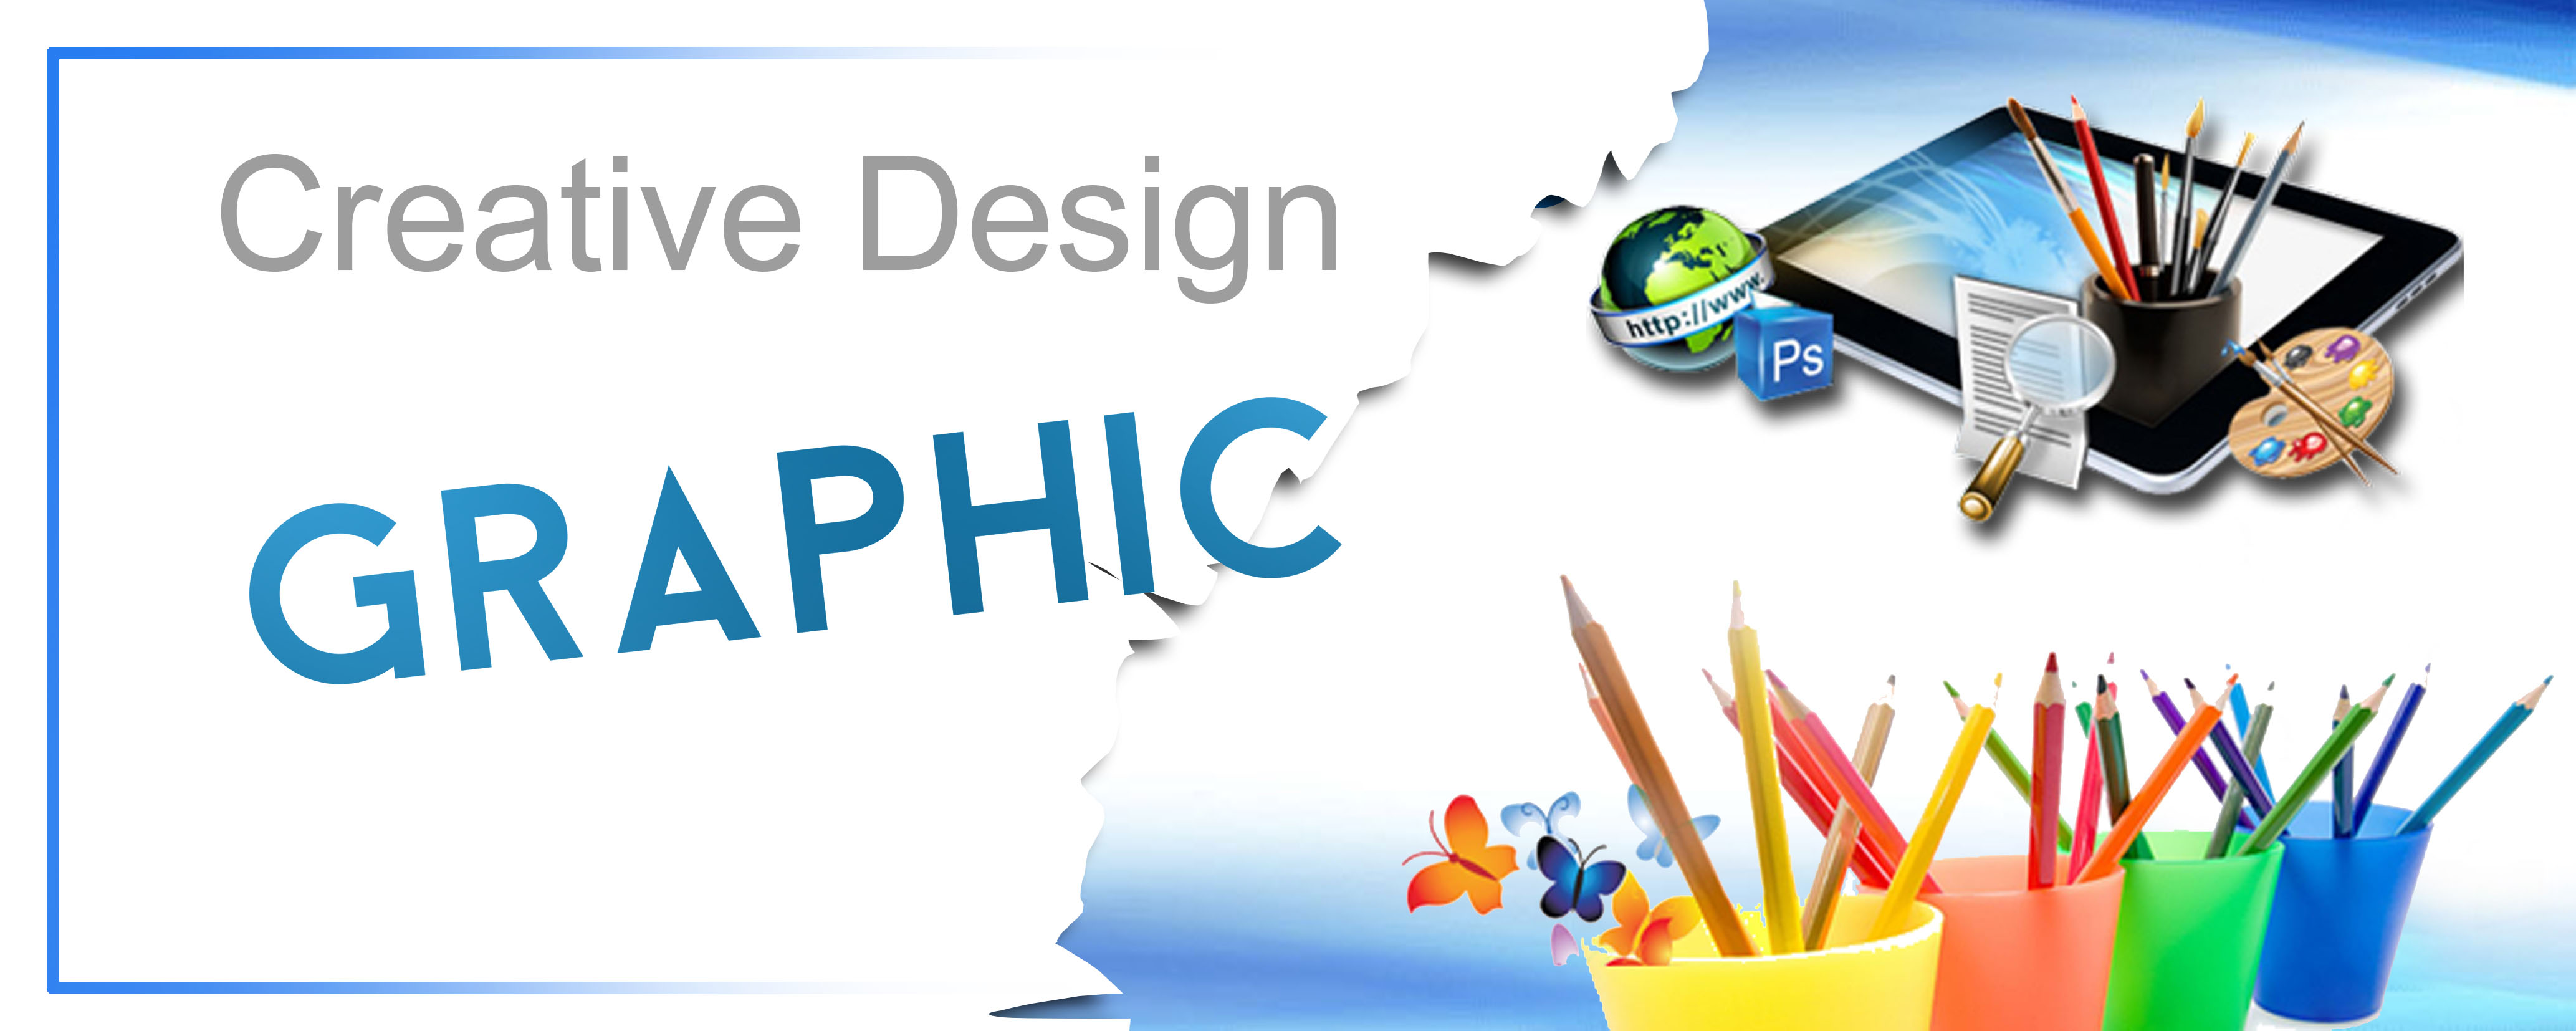 Design a Professional HQ LOGO and a Banner for all graphic